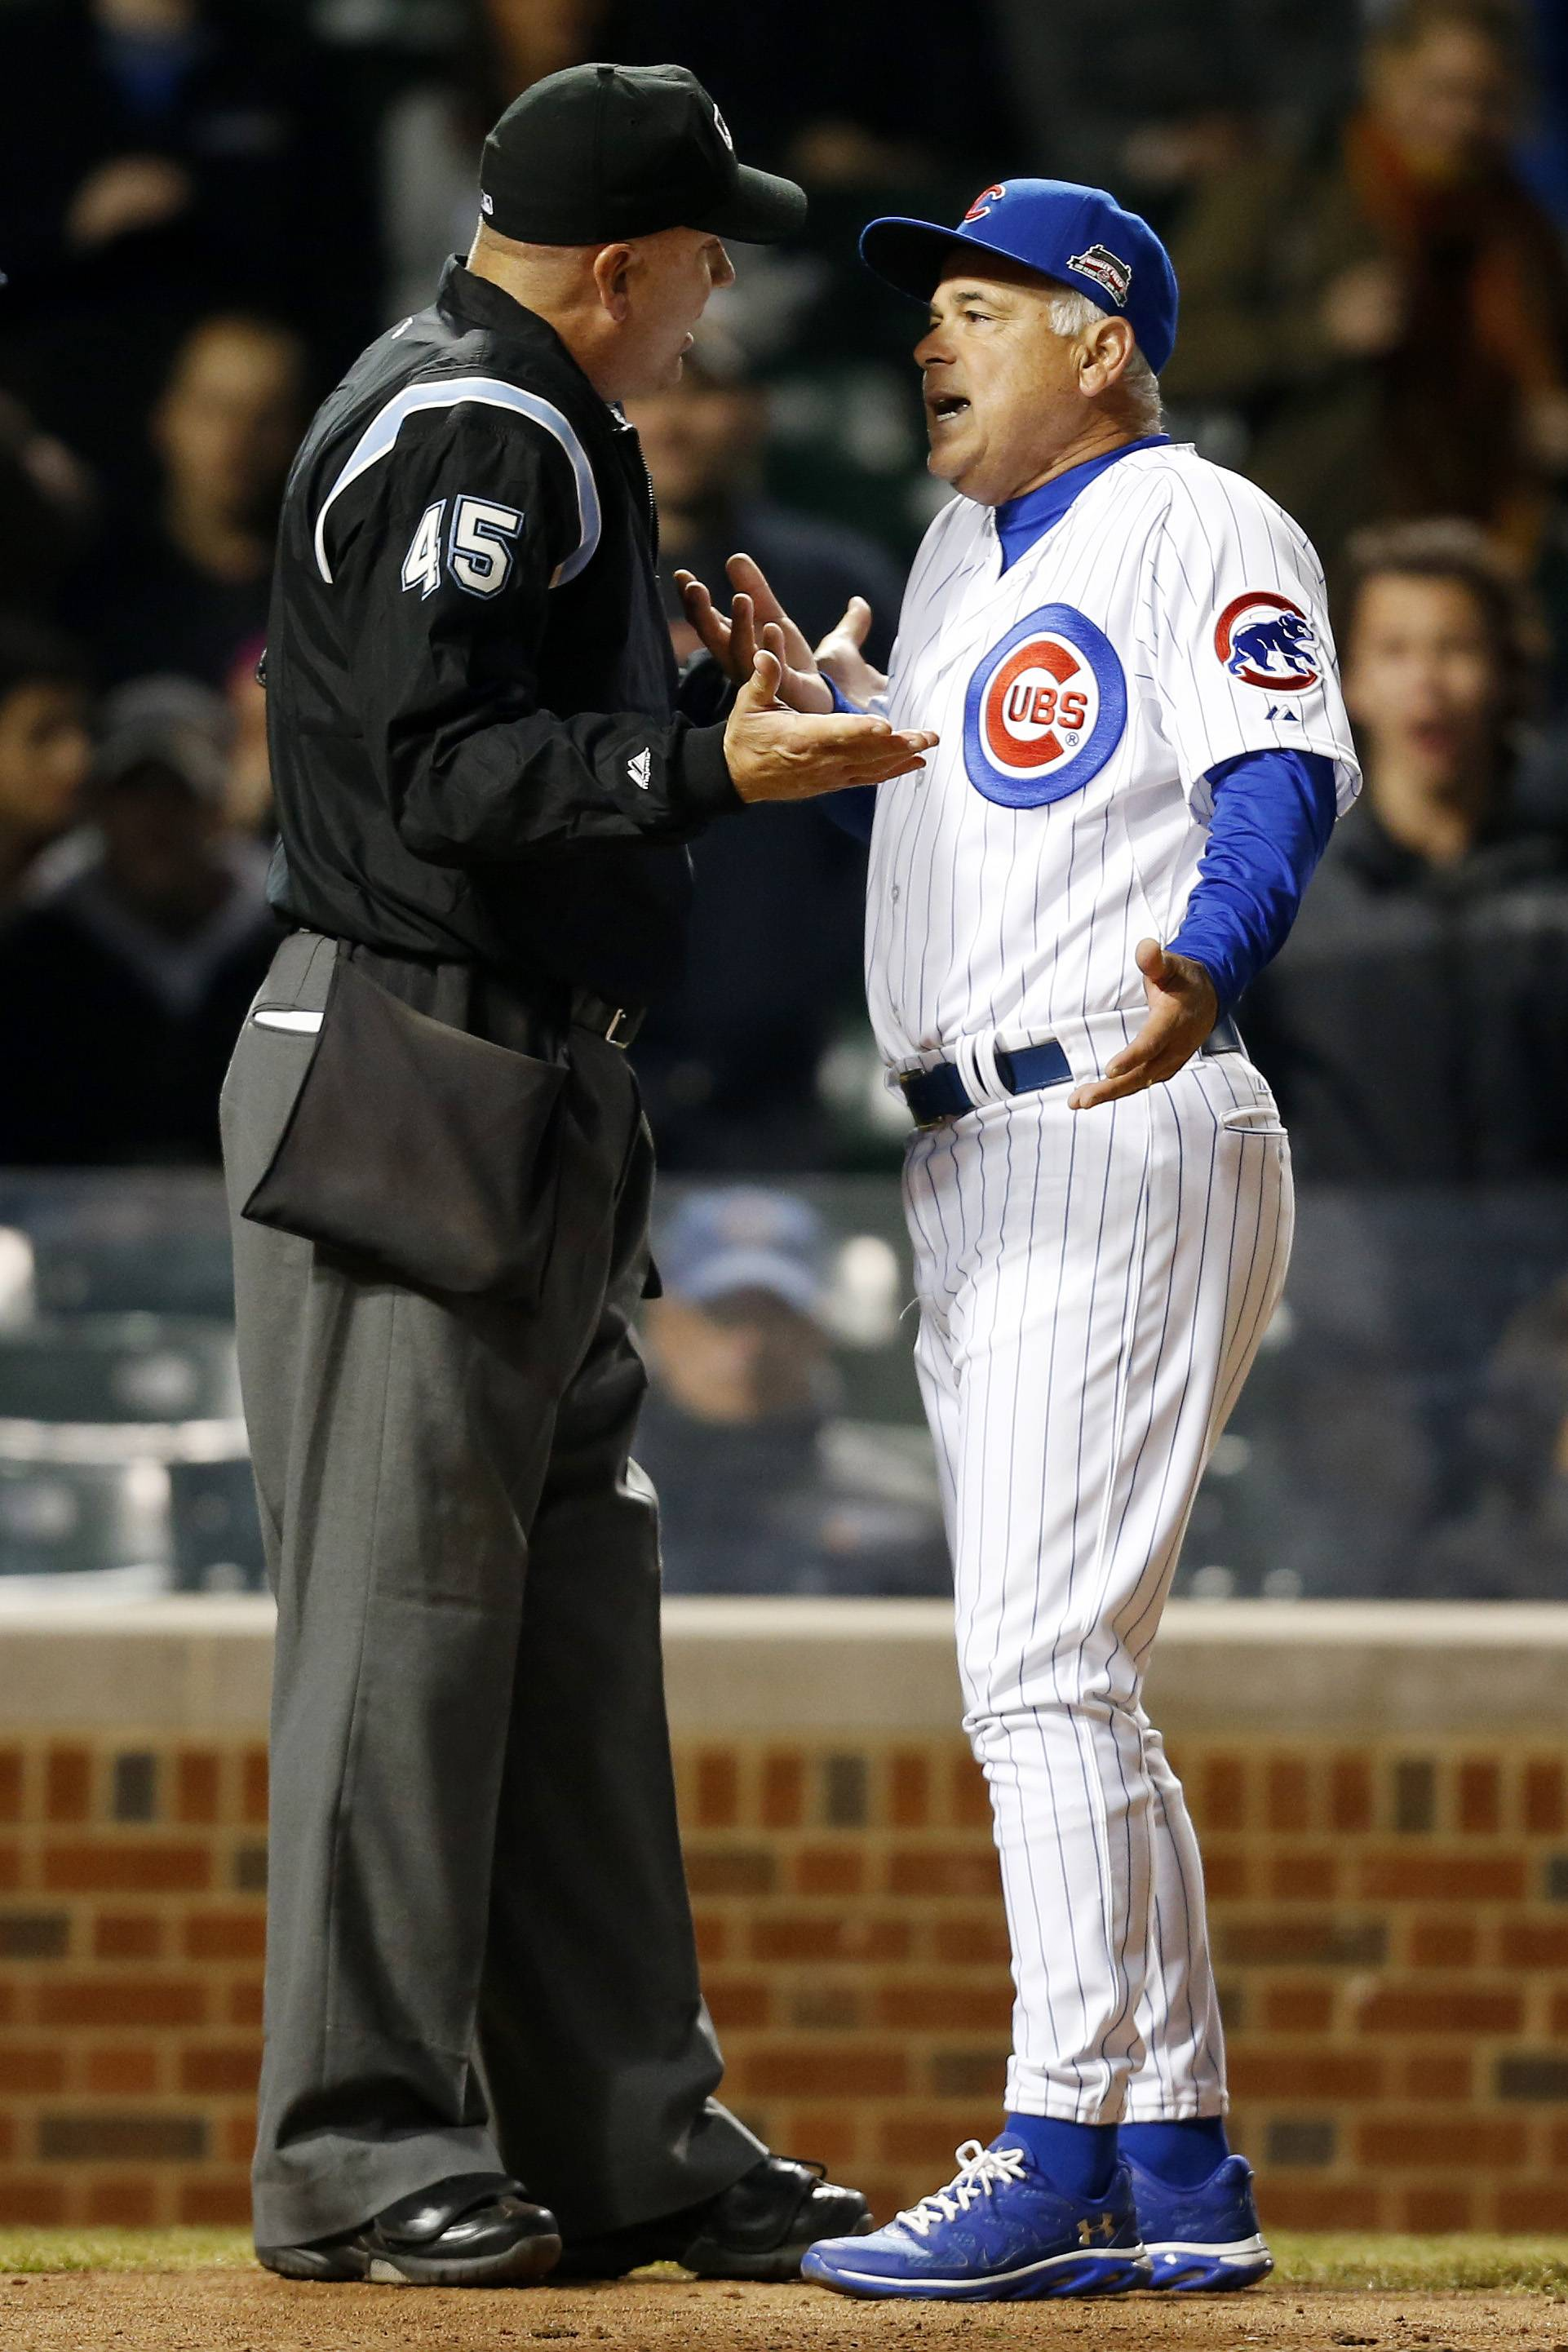 Umpire Jeff Nelson and Chicago Cubs manager Rick Renteria argue a call during the ninth inning of a baseball game against the Pittsburgh Pirates on Tuesday, April 8, 2014, in Chicago. Chicago Cubs manager Rick Renteria was ejected from the game following the argument. The Pittsburgh Pirates won 7-6.